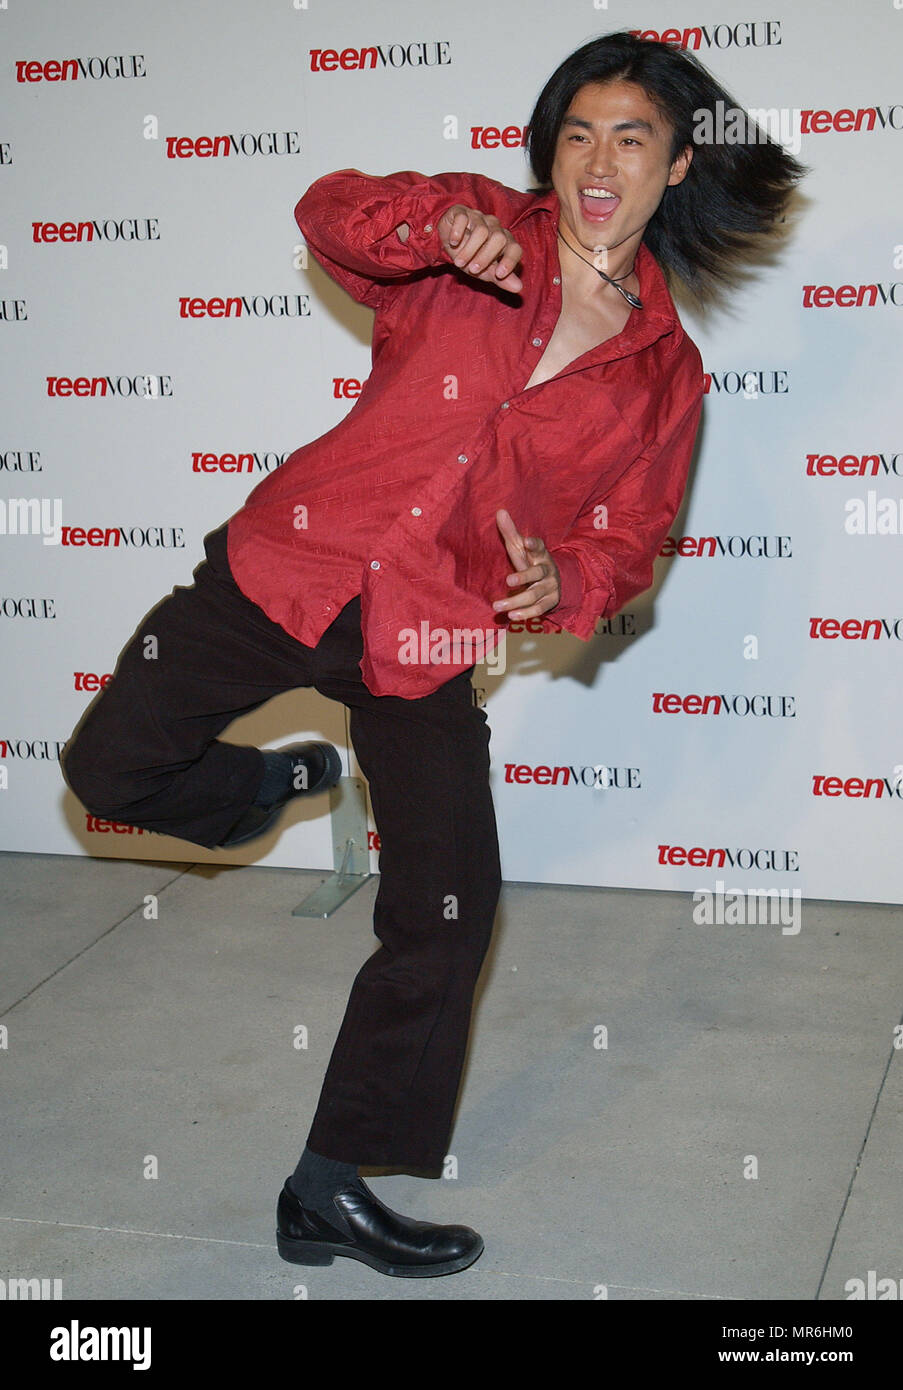 "Shin Koyamada (Tom Cruise's co-star in The Last Samurai) arriving at the "" TEEN VOGUE 1ST ANNUAL YOUNG HOLLYWOOD ISSUE "" in  a private residence in Beverly Hills (Los Angeles). September 5, 2003.  KoyamadaShin106 Red Carpet Event, Vertical, USA, Film Industry, Celebrities,  Photography, Bestof, Arts Culture and Entertainment, Topix Celebrities fashion /  Vertical, Best of, Event in Hollywood Life - California,  Red Carpet and backstage, USA, Film Industry, Celebrities,  movie celebrities, TV celebrities, Music celebrities, Photography, Bestof, Arts Culture and Entertainment,  Topix, vertical,  Stock Photo"